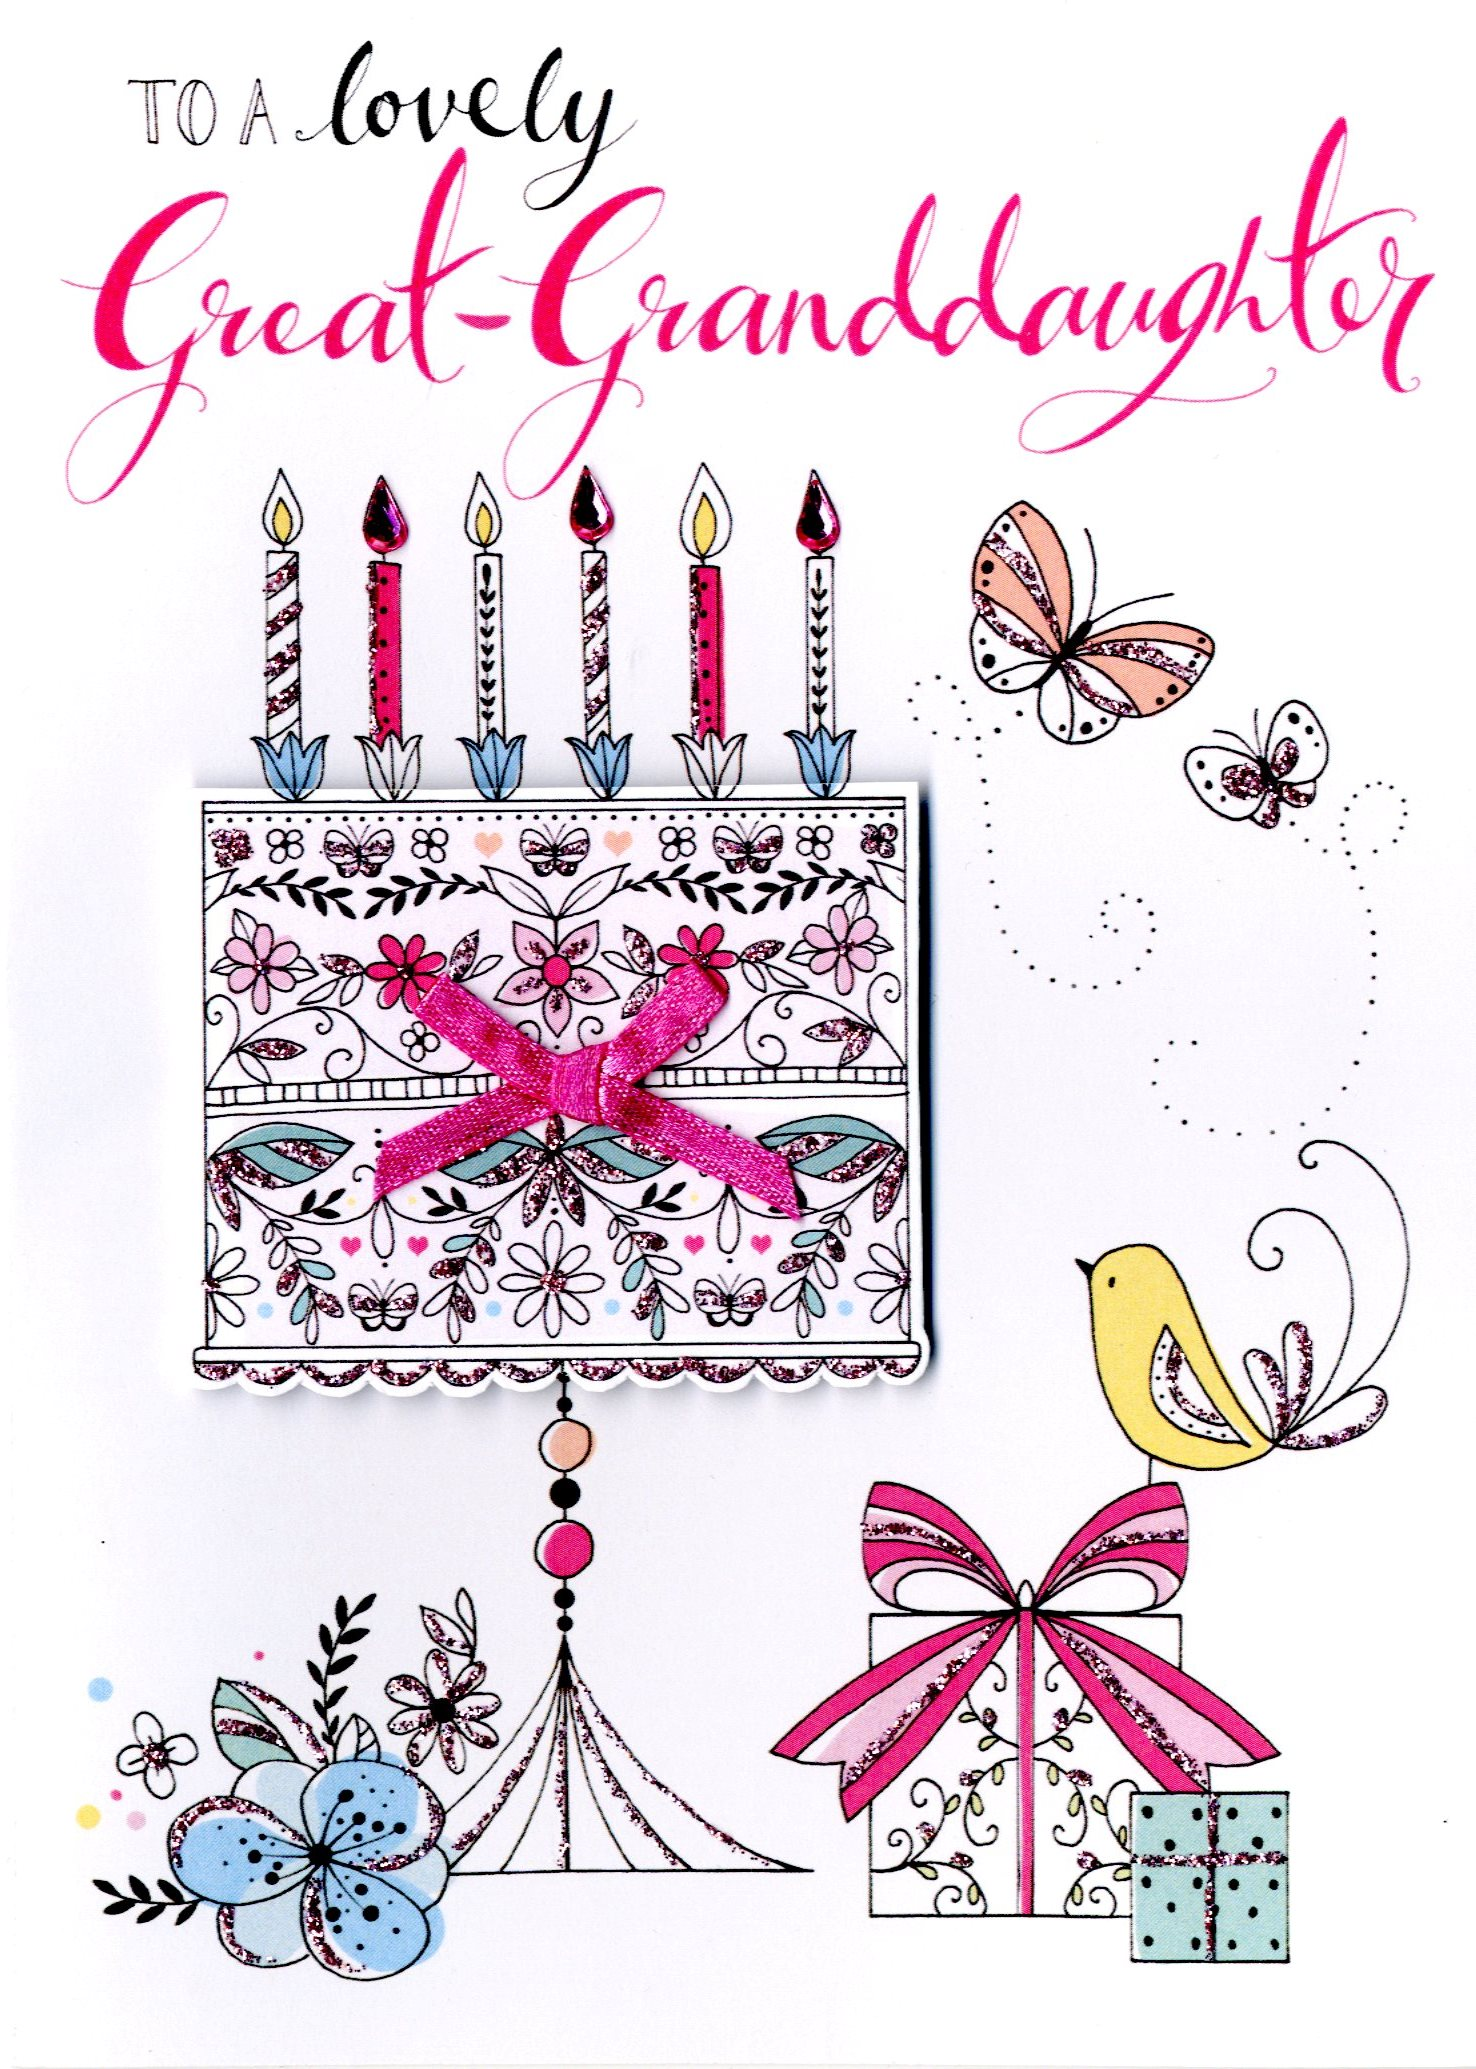 Great granddaughter birthday greeting card cards love kates great granddaughter birthday greeting card m4hsunfo